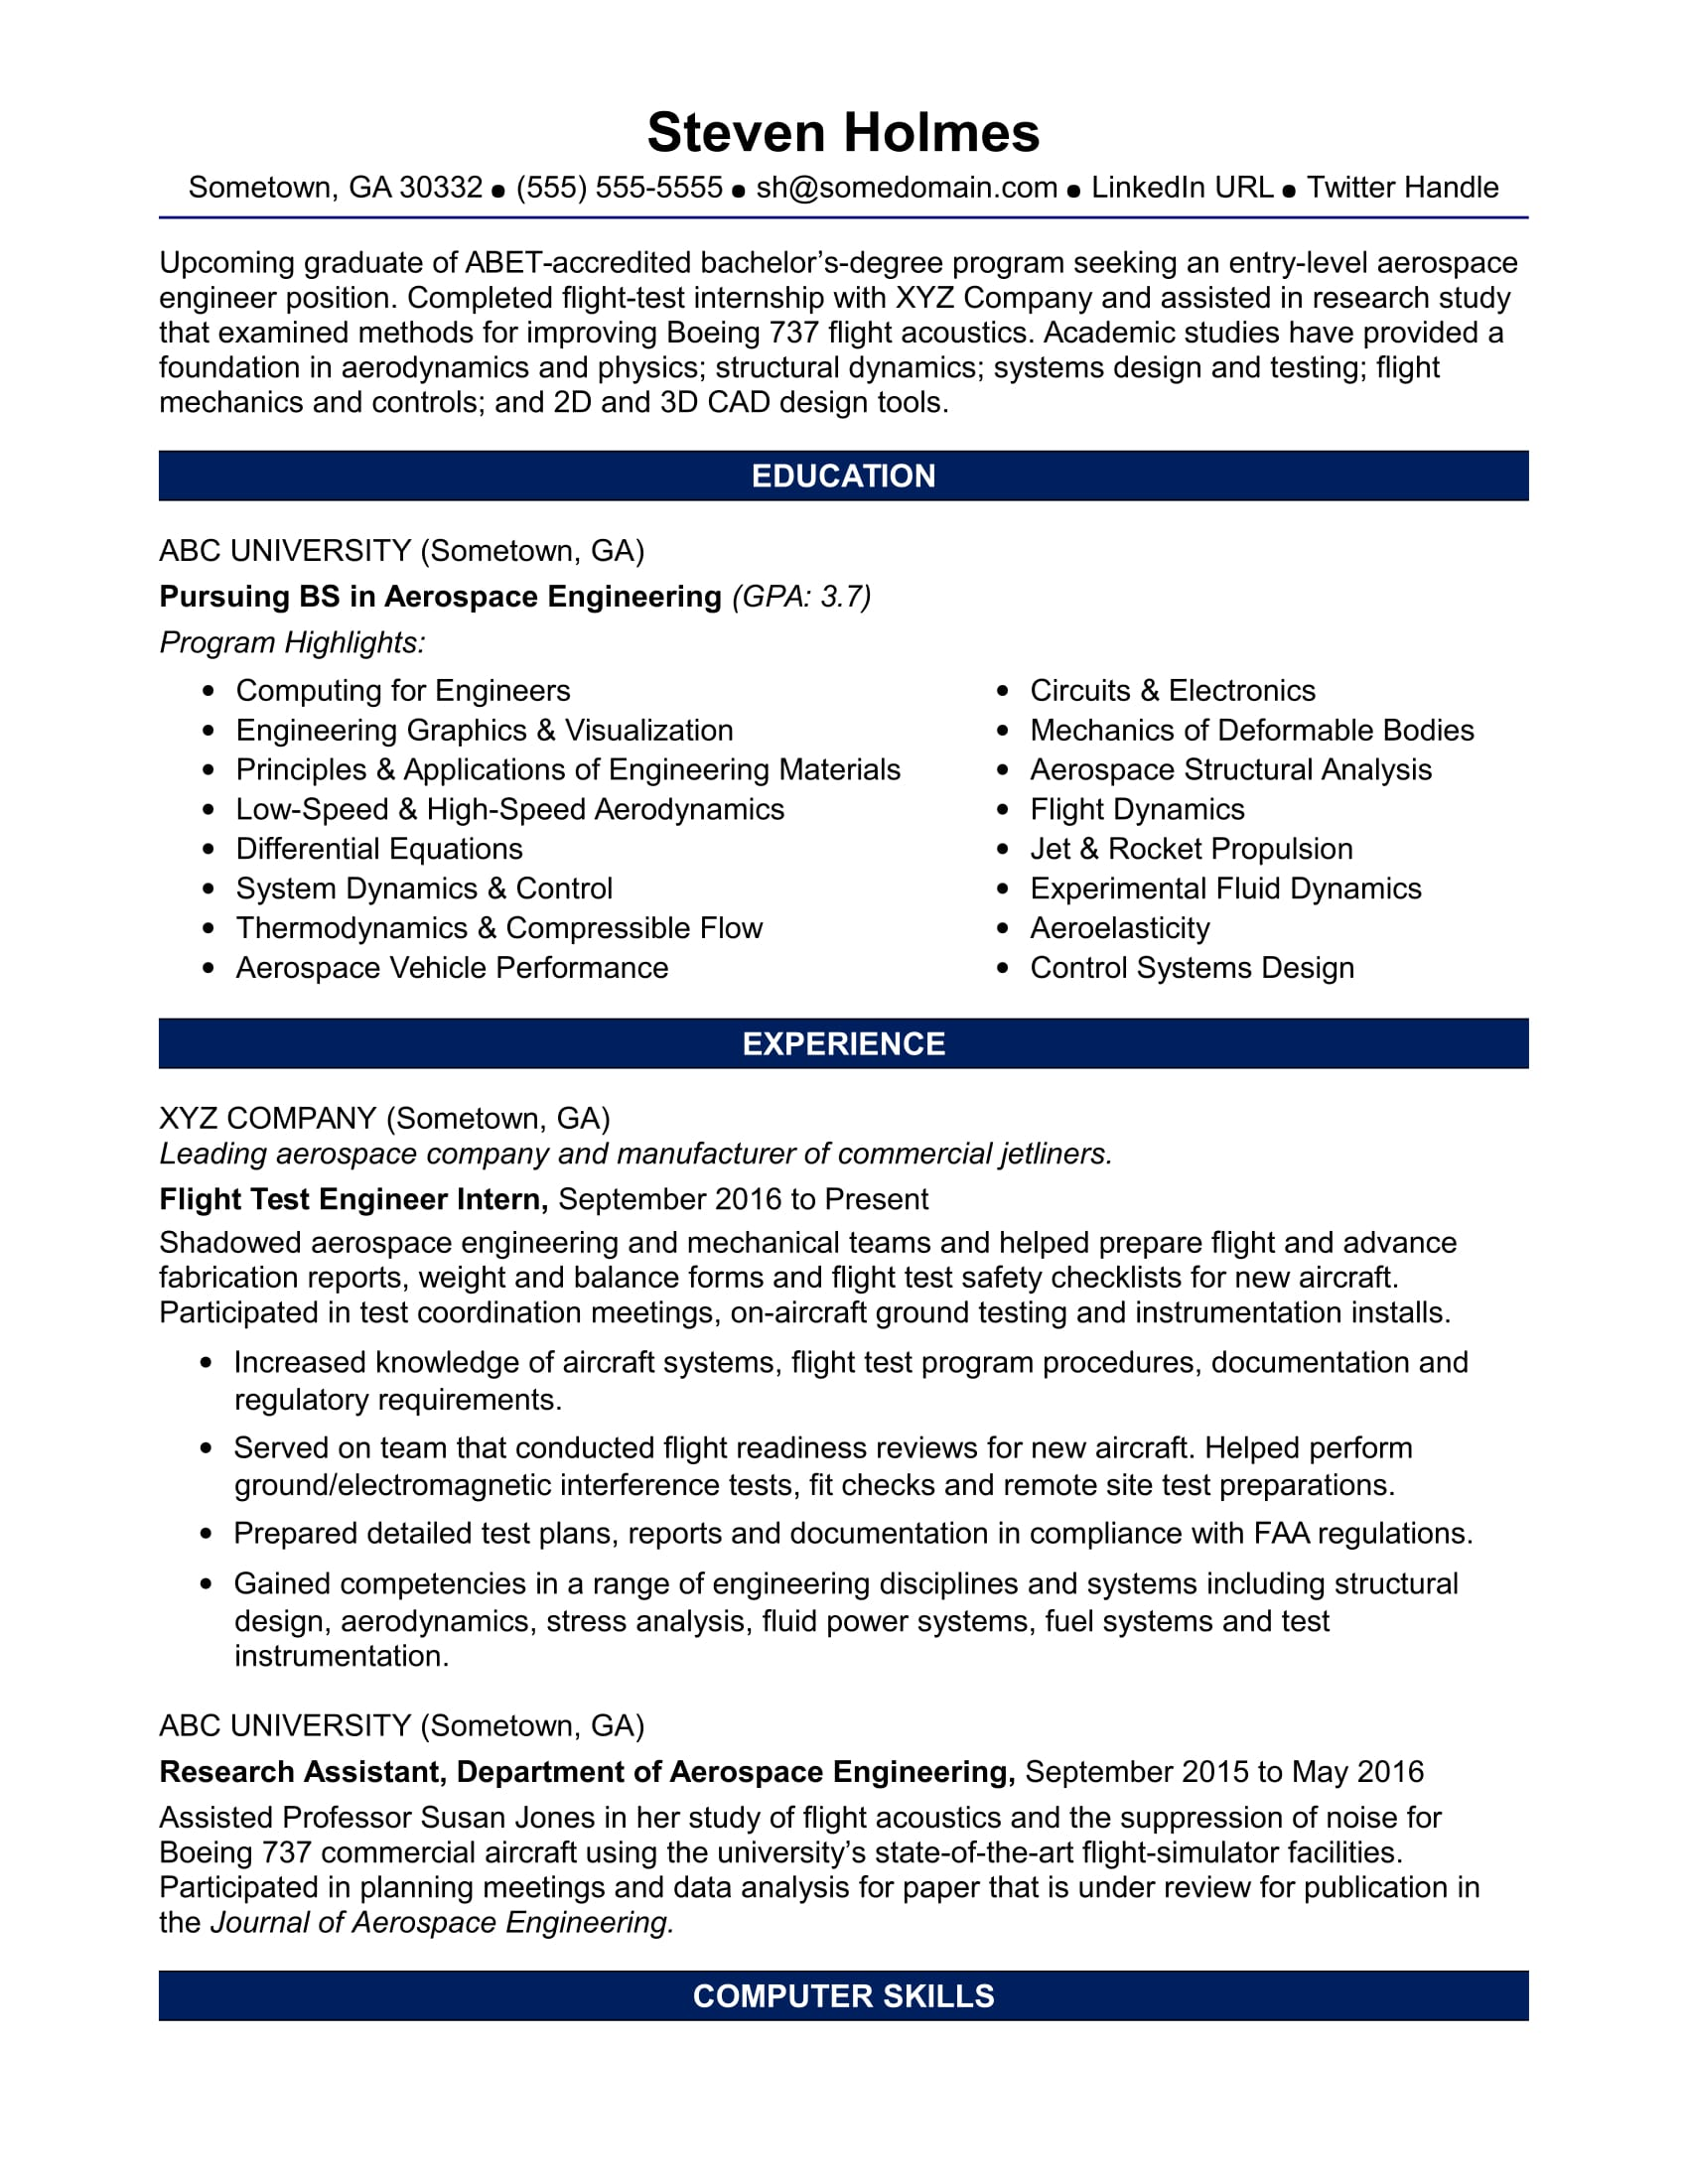 Sample Resume for an Entry-Level Aerospace Engineer